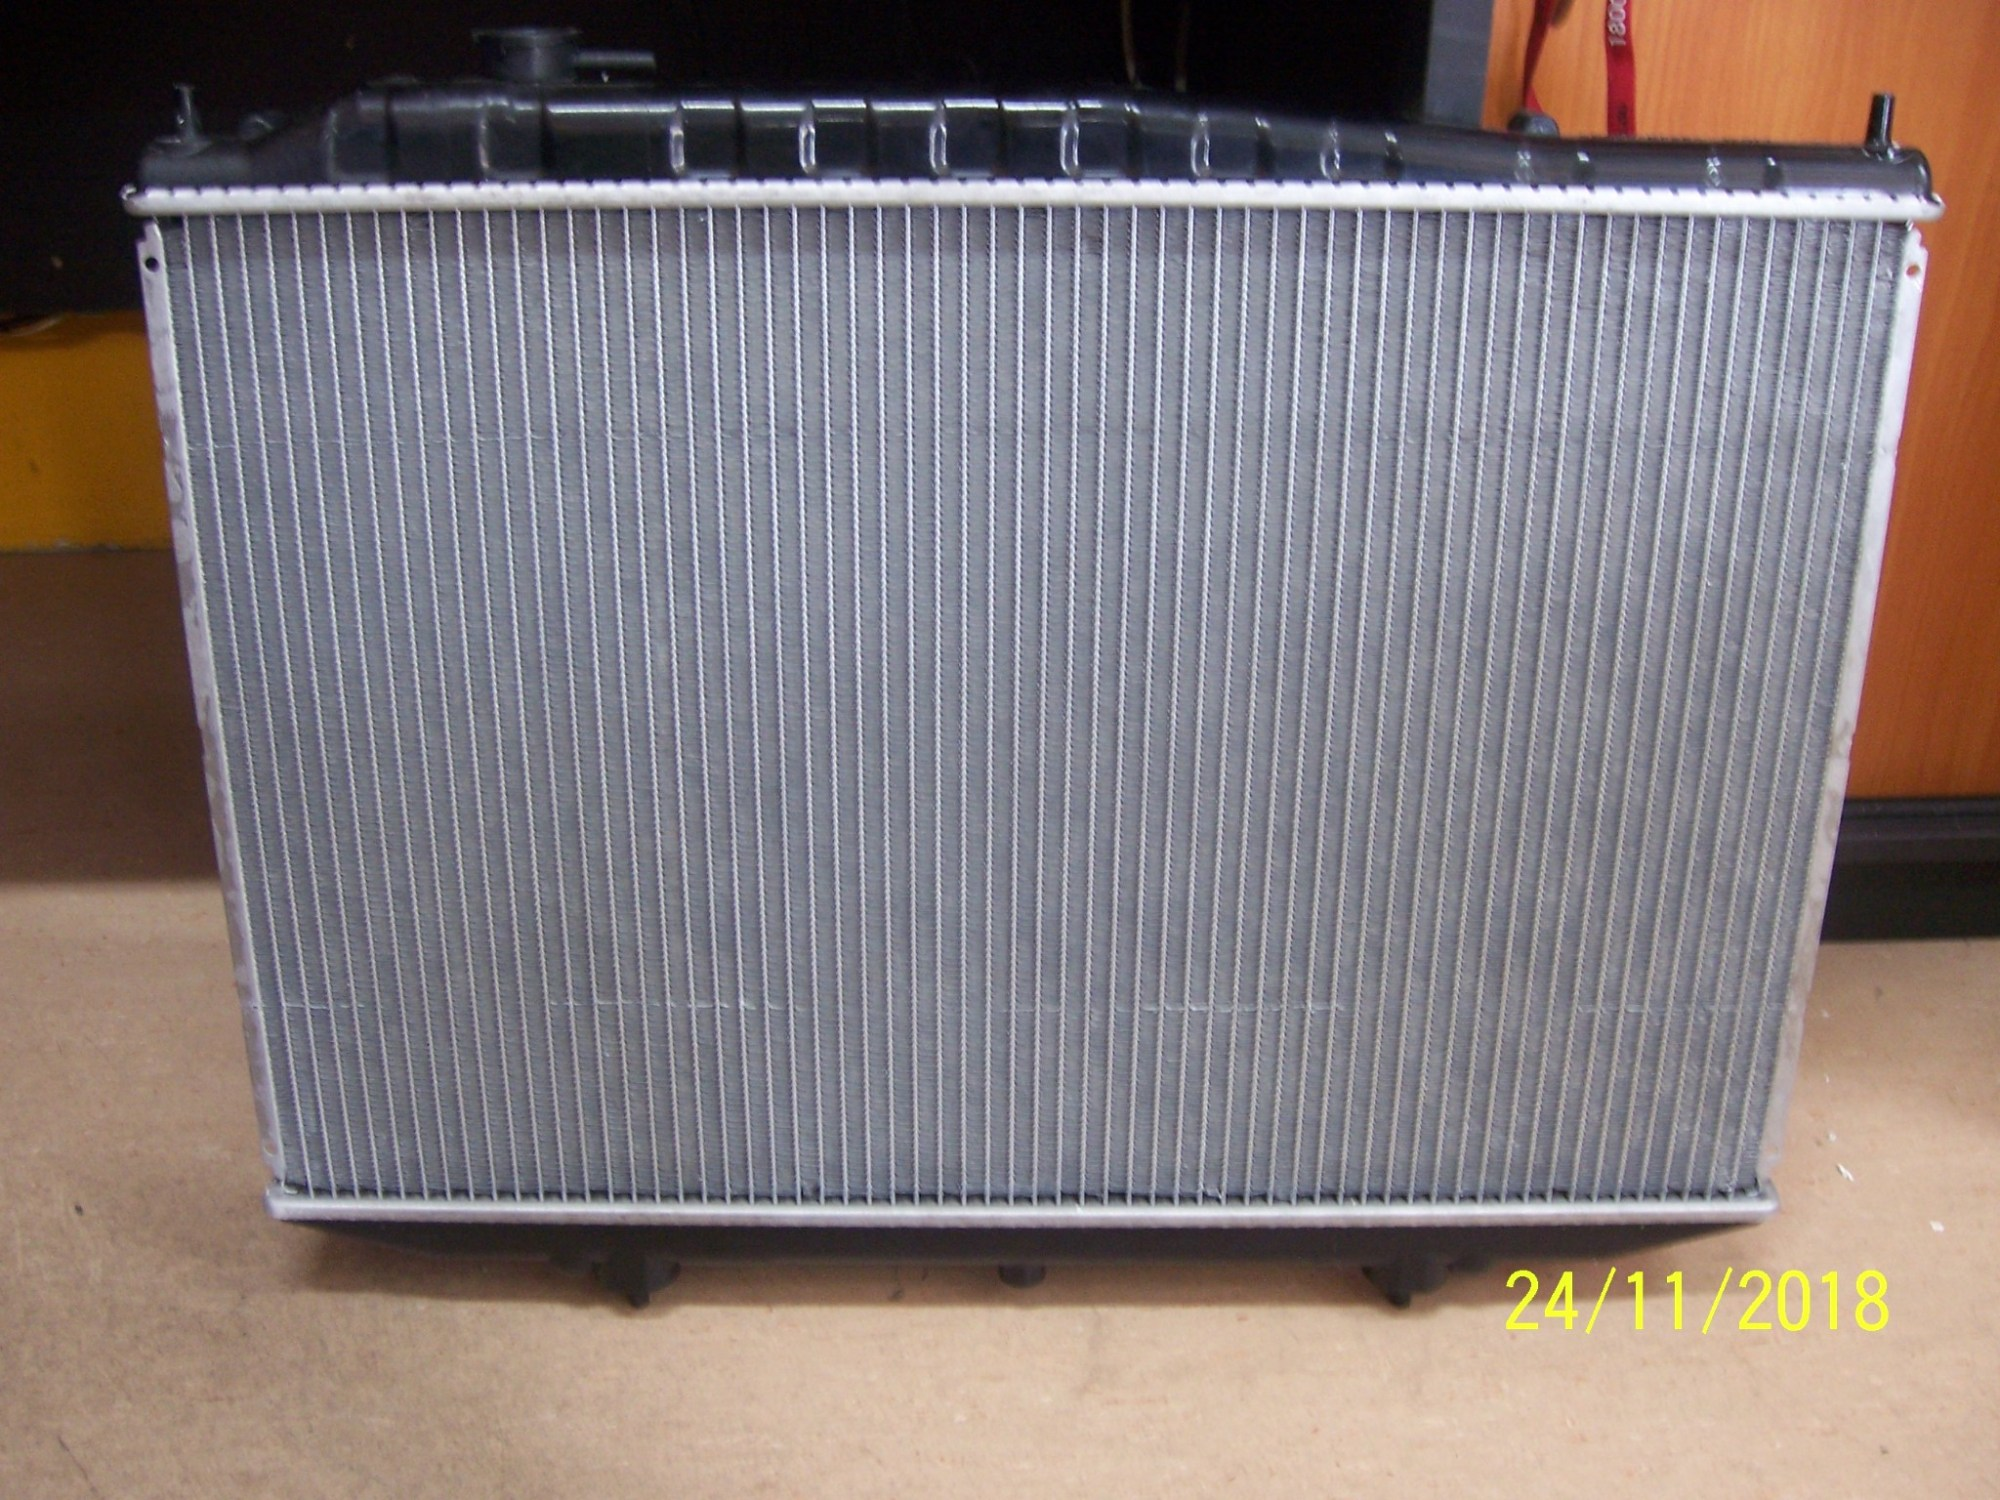 hight resolution of details about radiator nissan navara d22 1997 2015 manual 3 2ltr diesel 2 7ltr